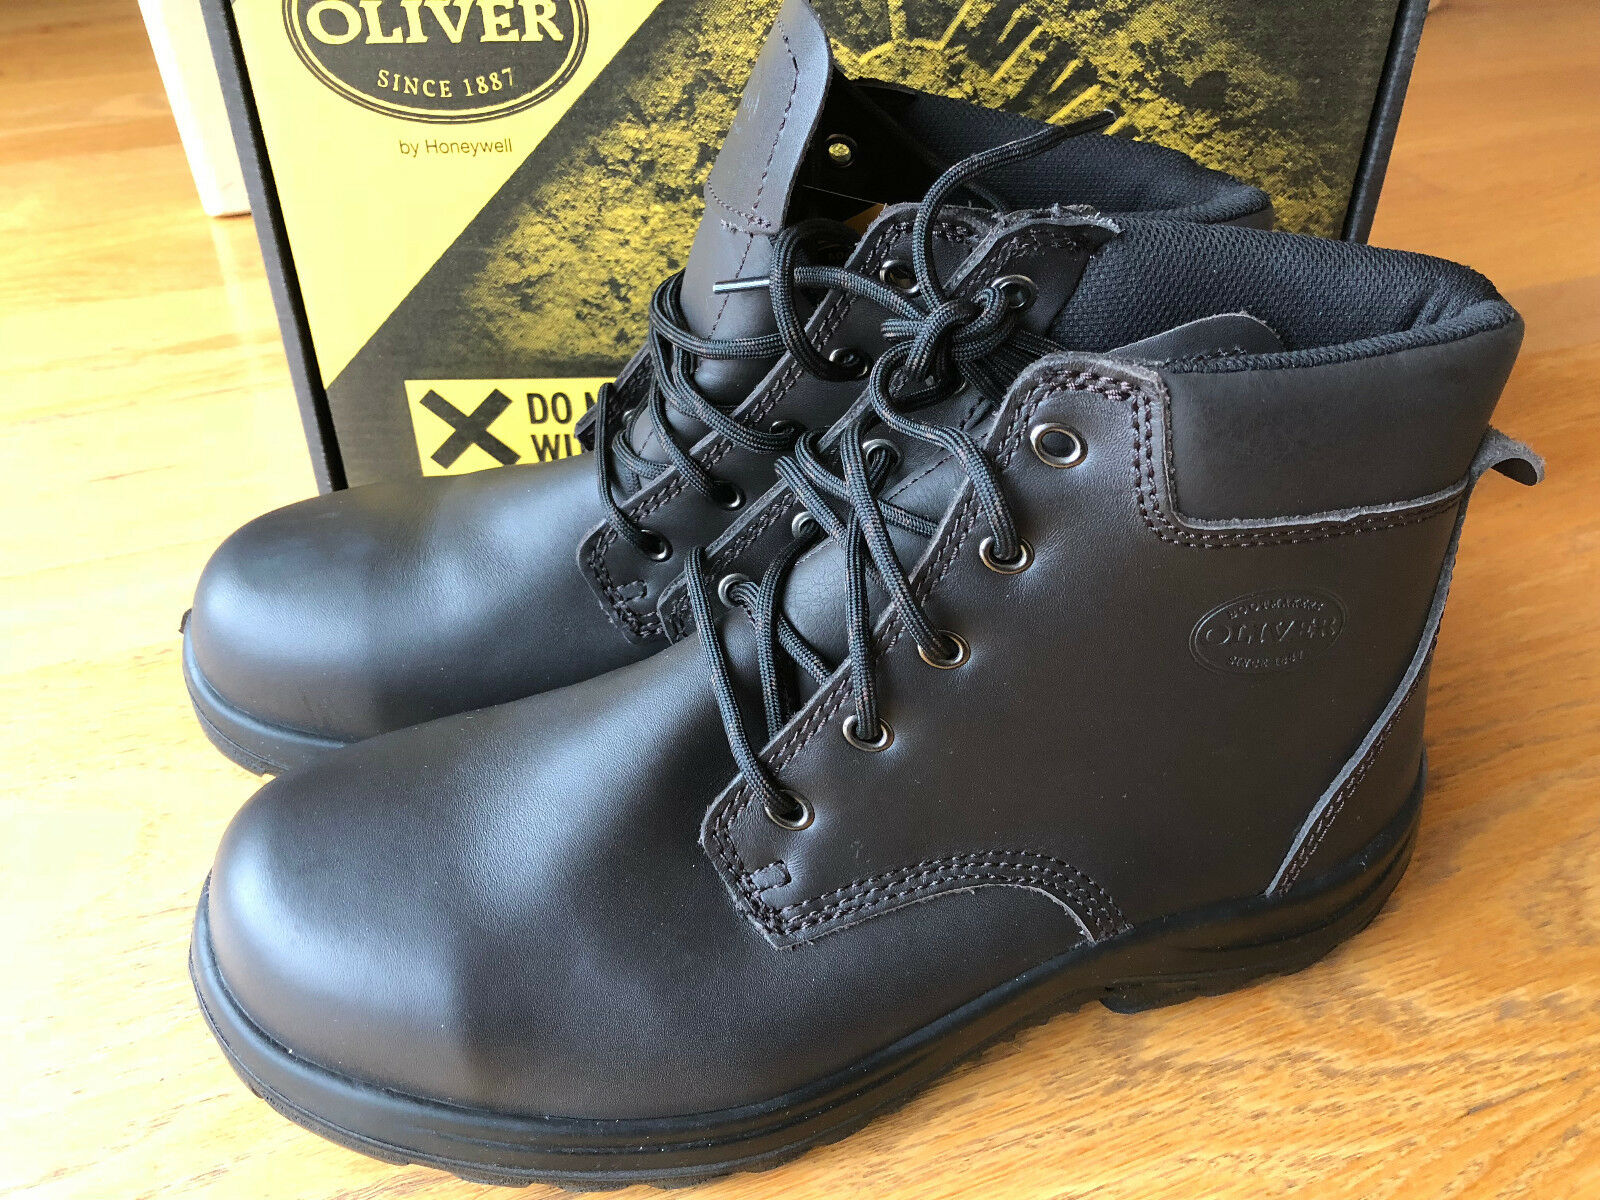 Brand New Oliver Claret Steel Toe Cup Work Safety Boots shoes Size 10 in the Box